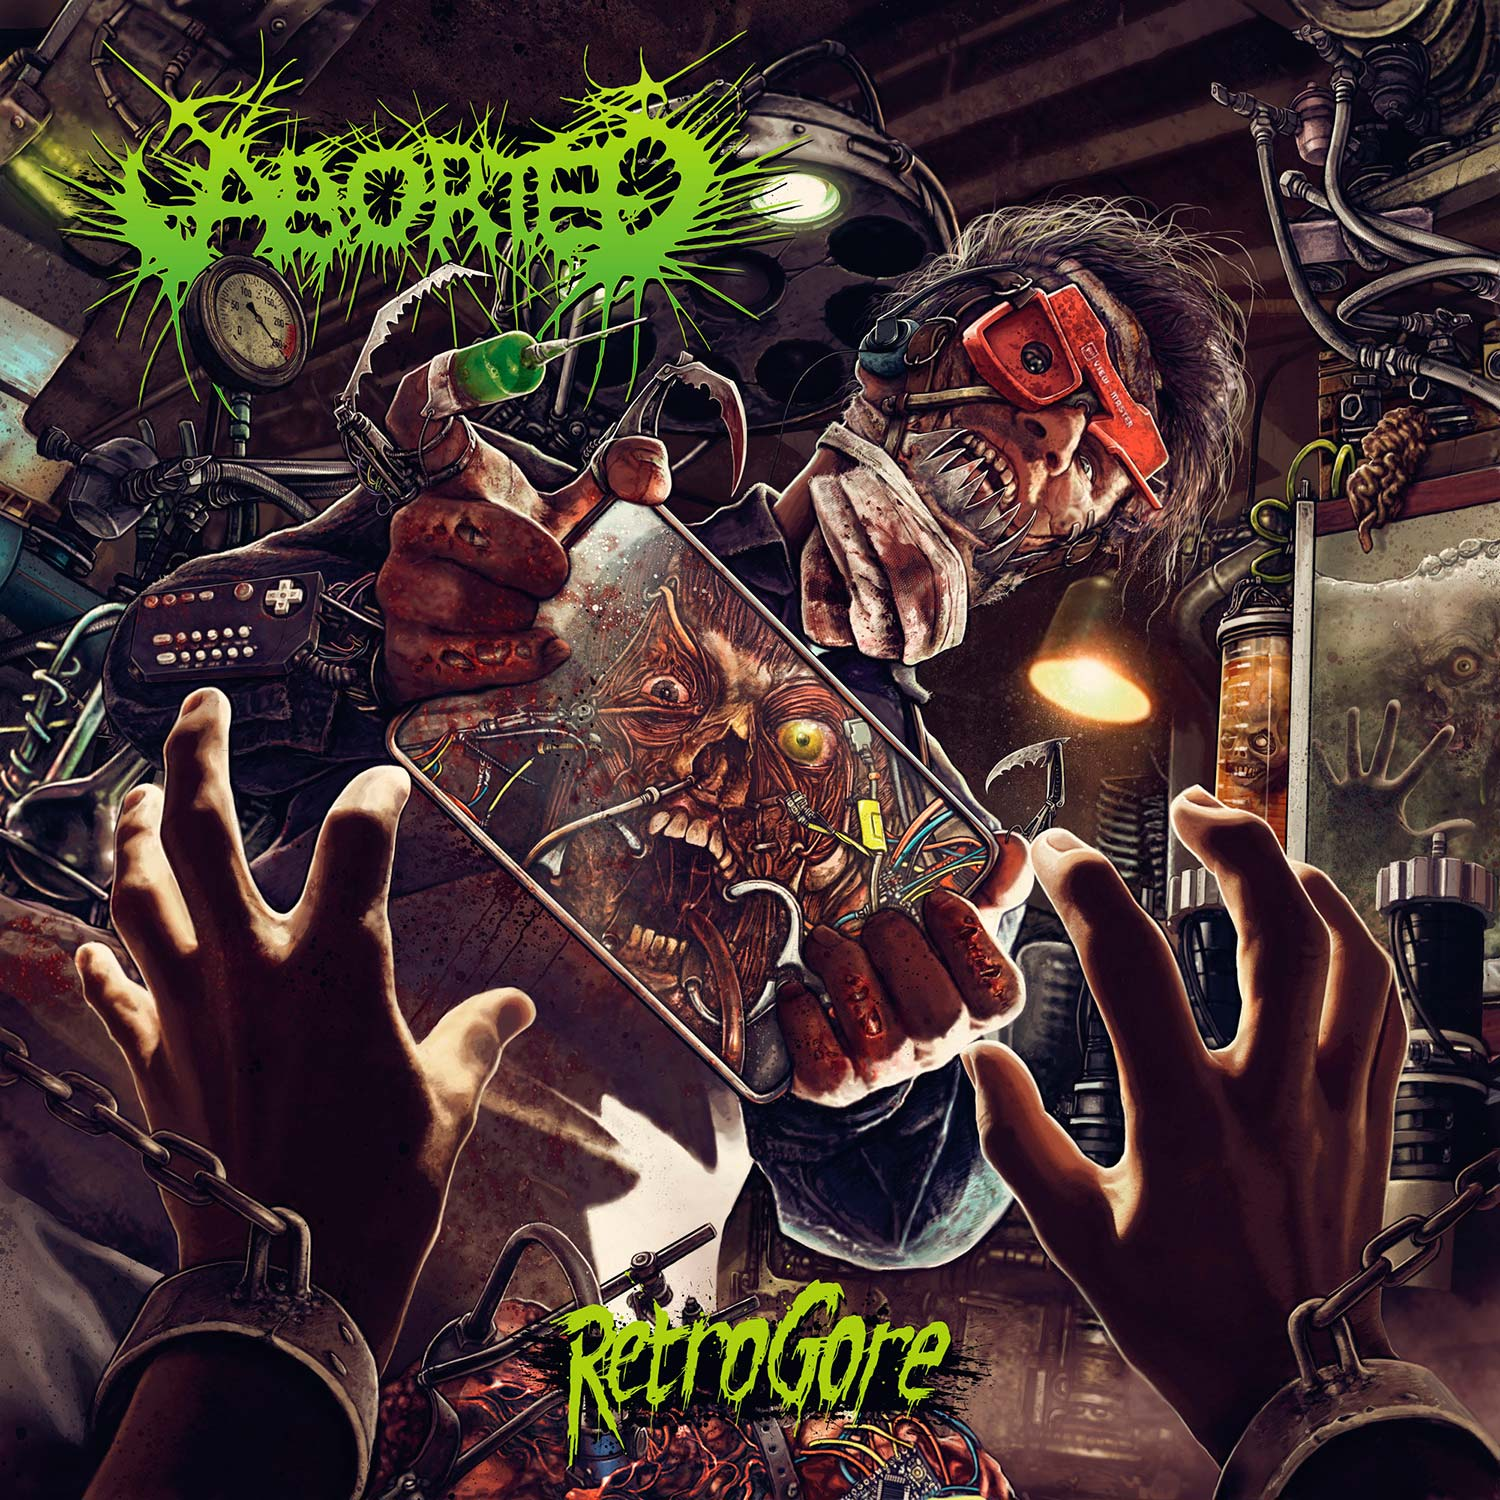 Aborted 'Retrogore'